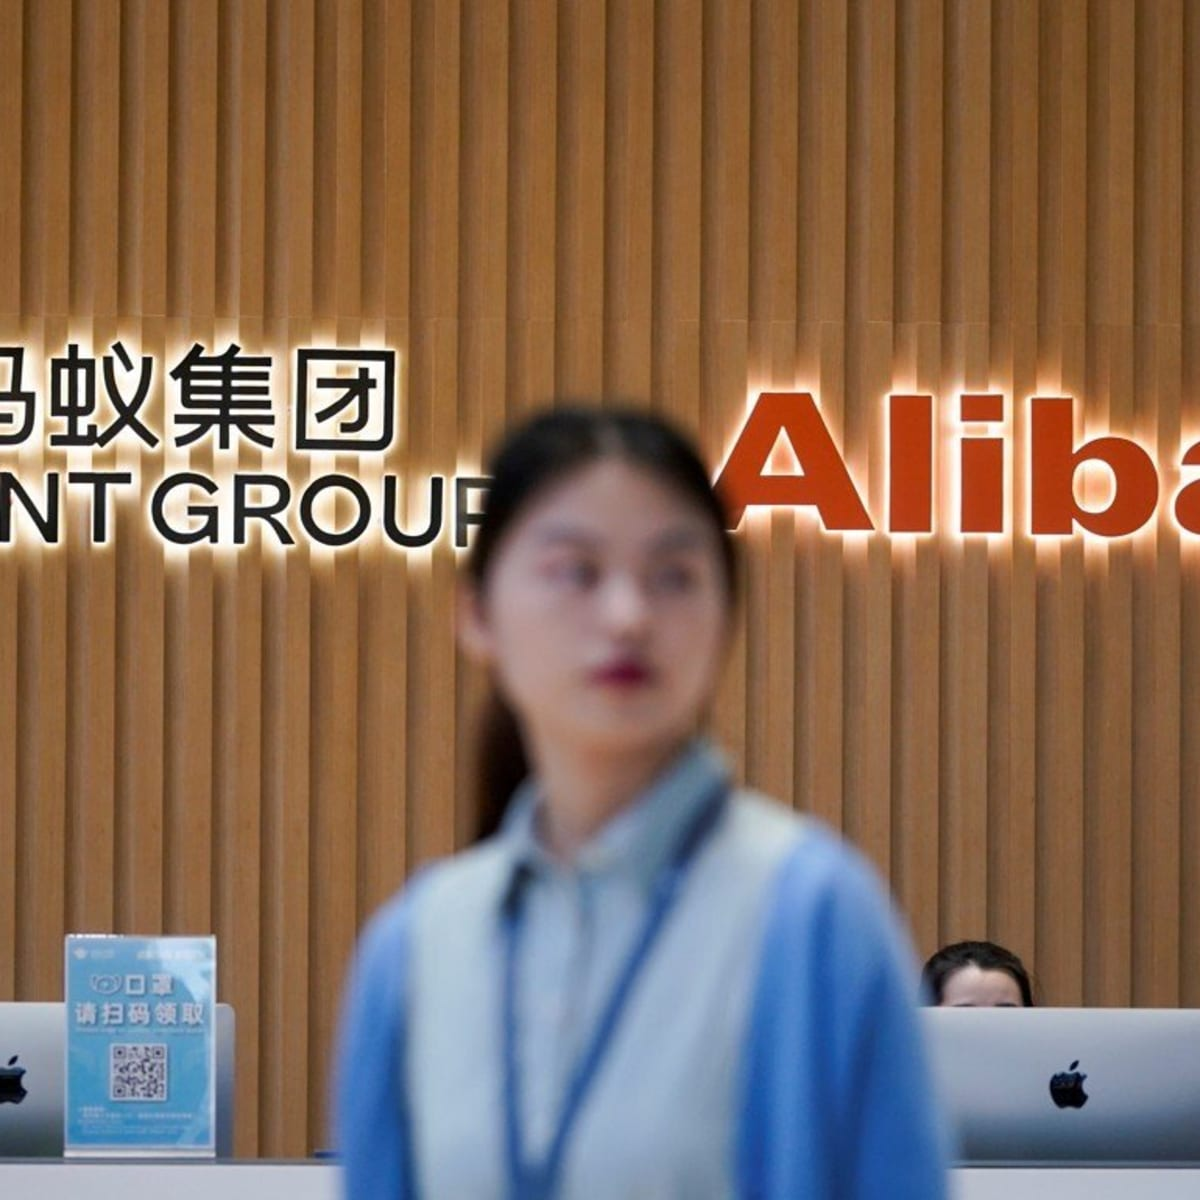 Morning Bell With Jim Cramer Buy Alibaba Stock Thestreet The official corporate handle for alibaba the german chamber of commerce in china tapped alibaba's #livestreaming technology to move its. jim cramer buy alibaba stock